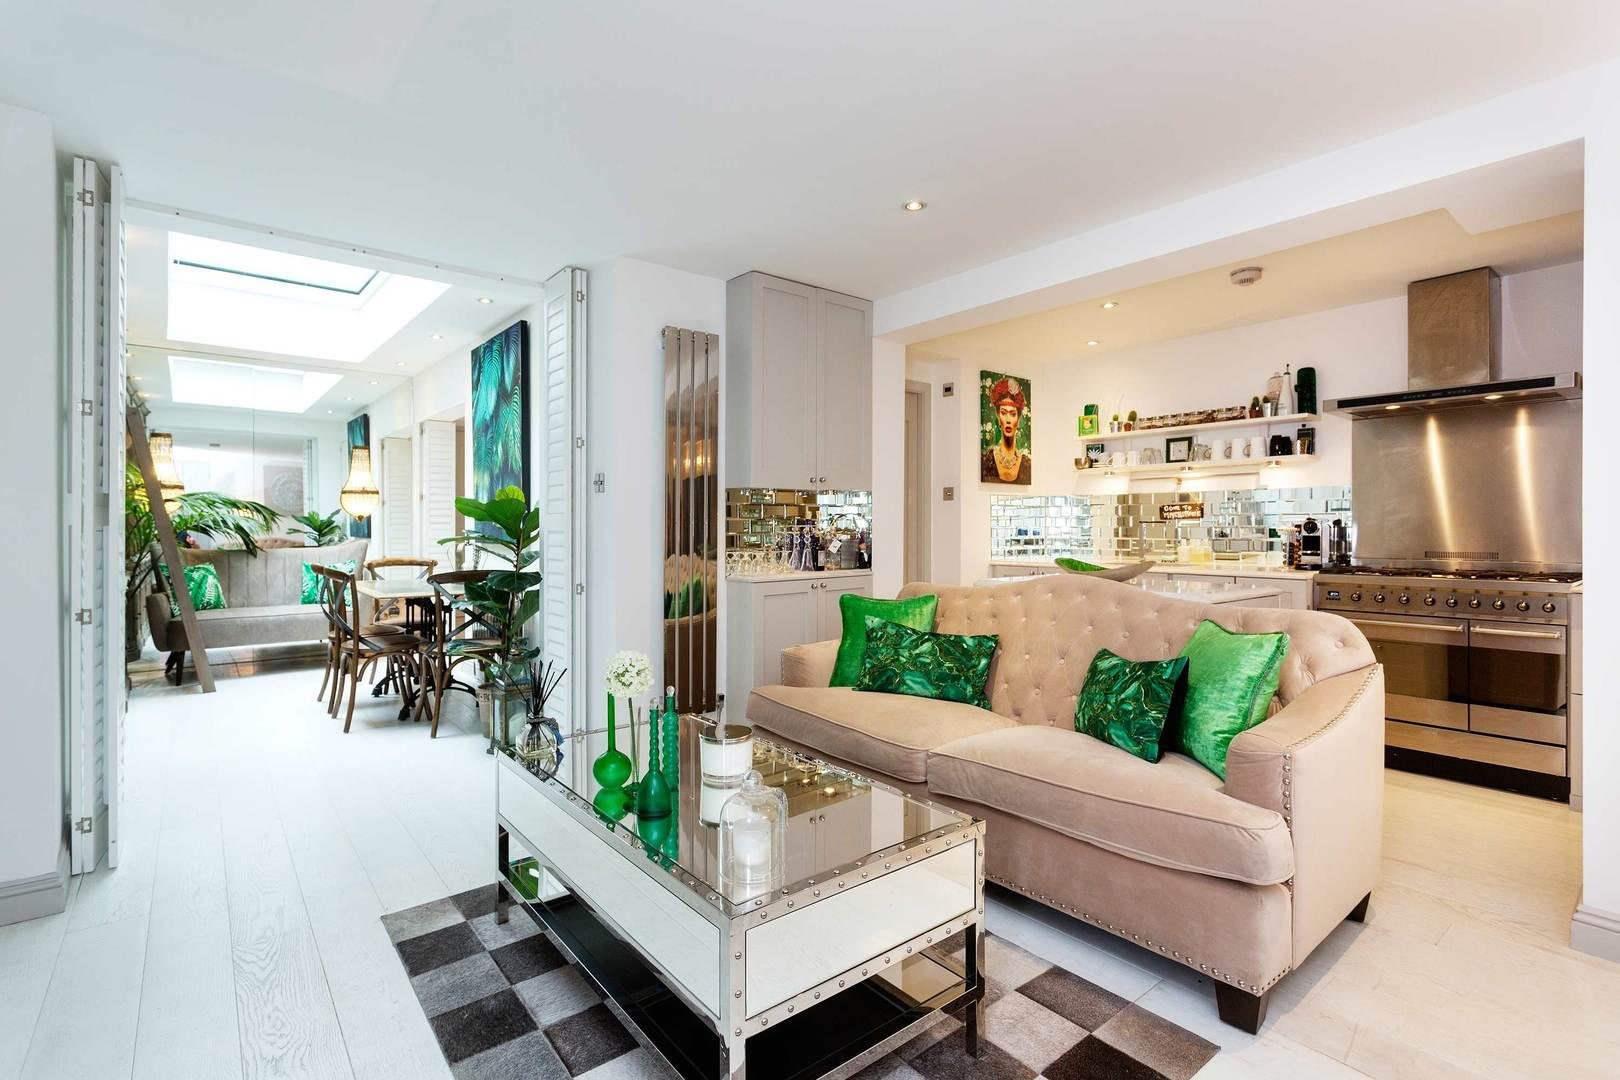 Property Image 2 - Impressive Marylebone Apartment in Excellent Location